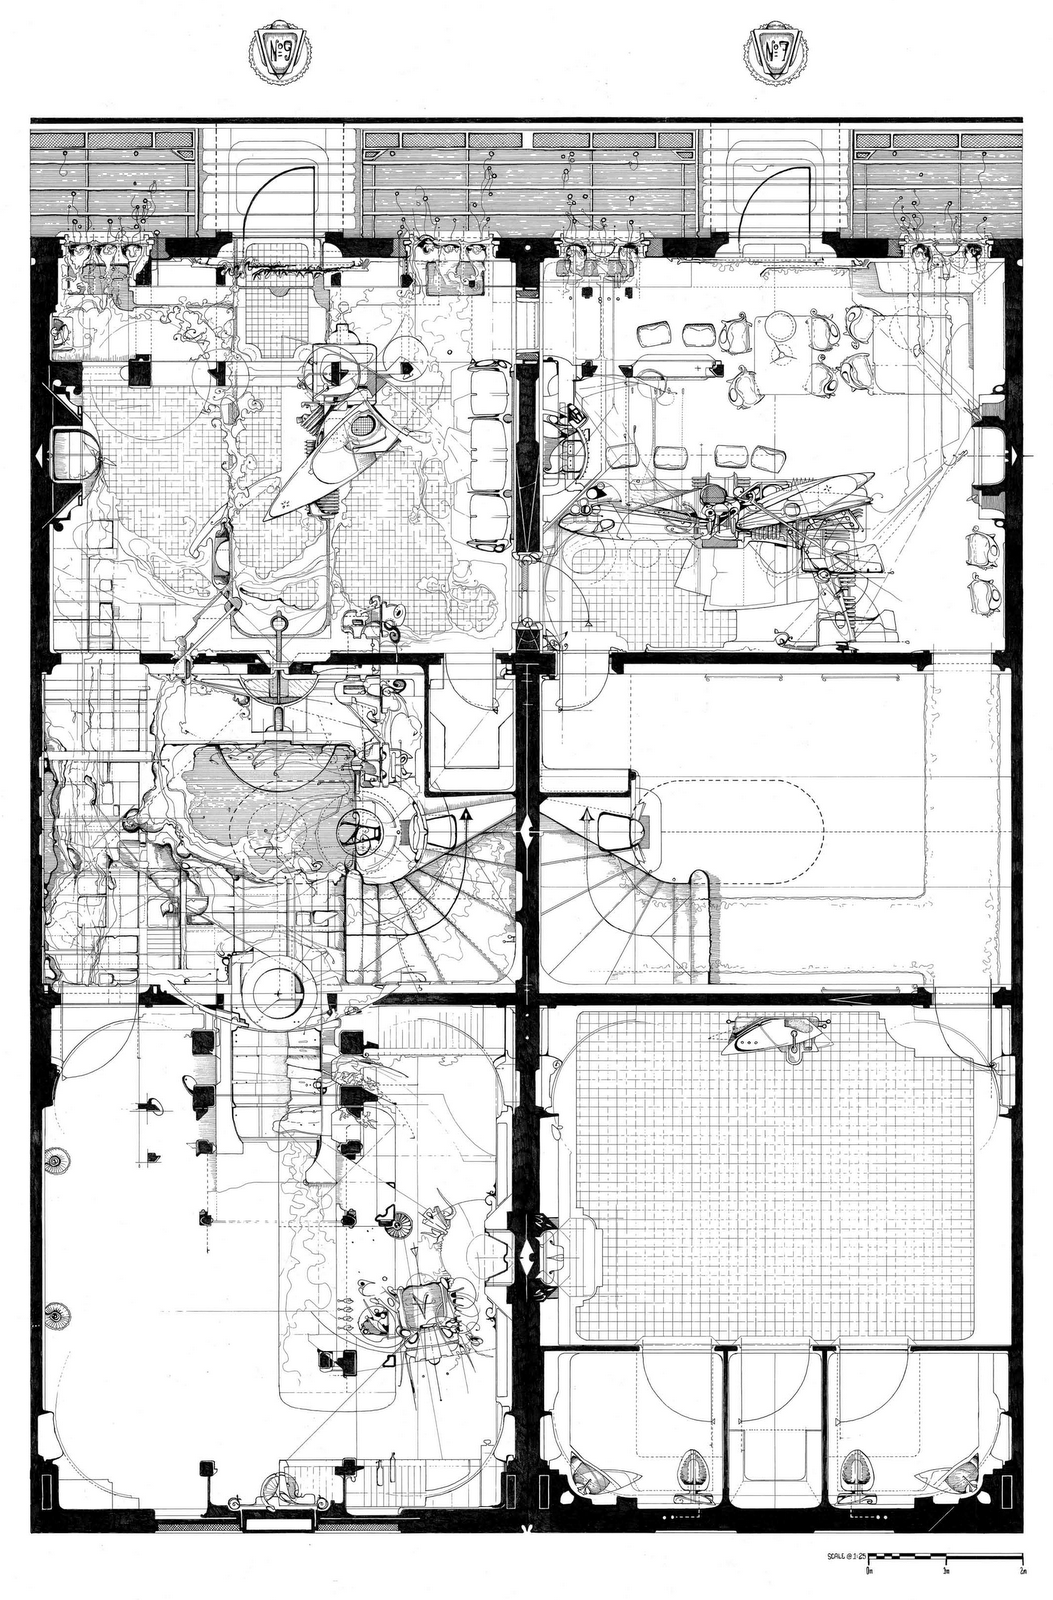 Artitecture dan slavinsky architect for Architecture design blueprint